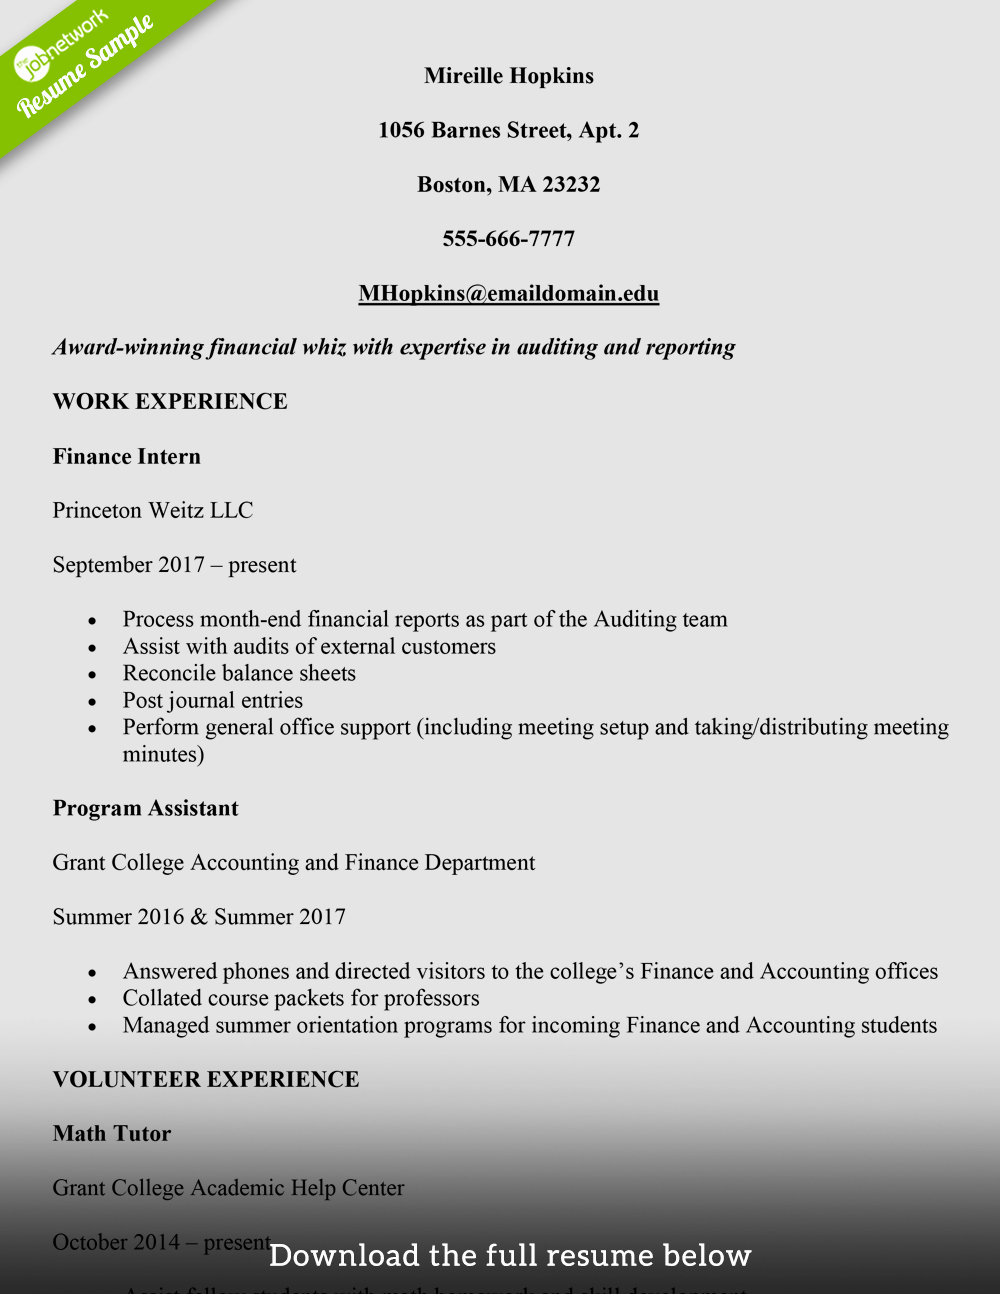 Resume Samples for College Student Beautiful How to Write A College Student Resume with Examples